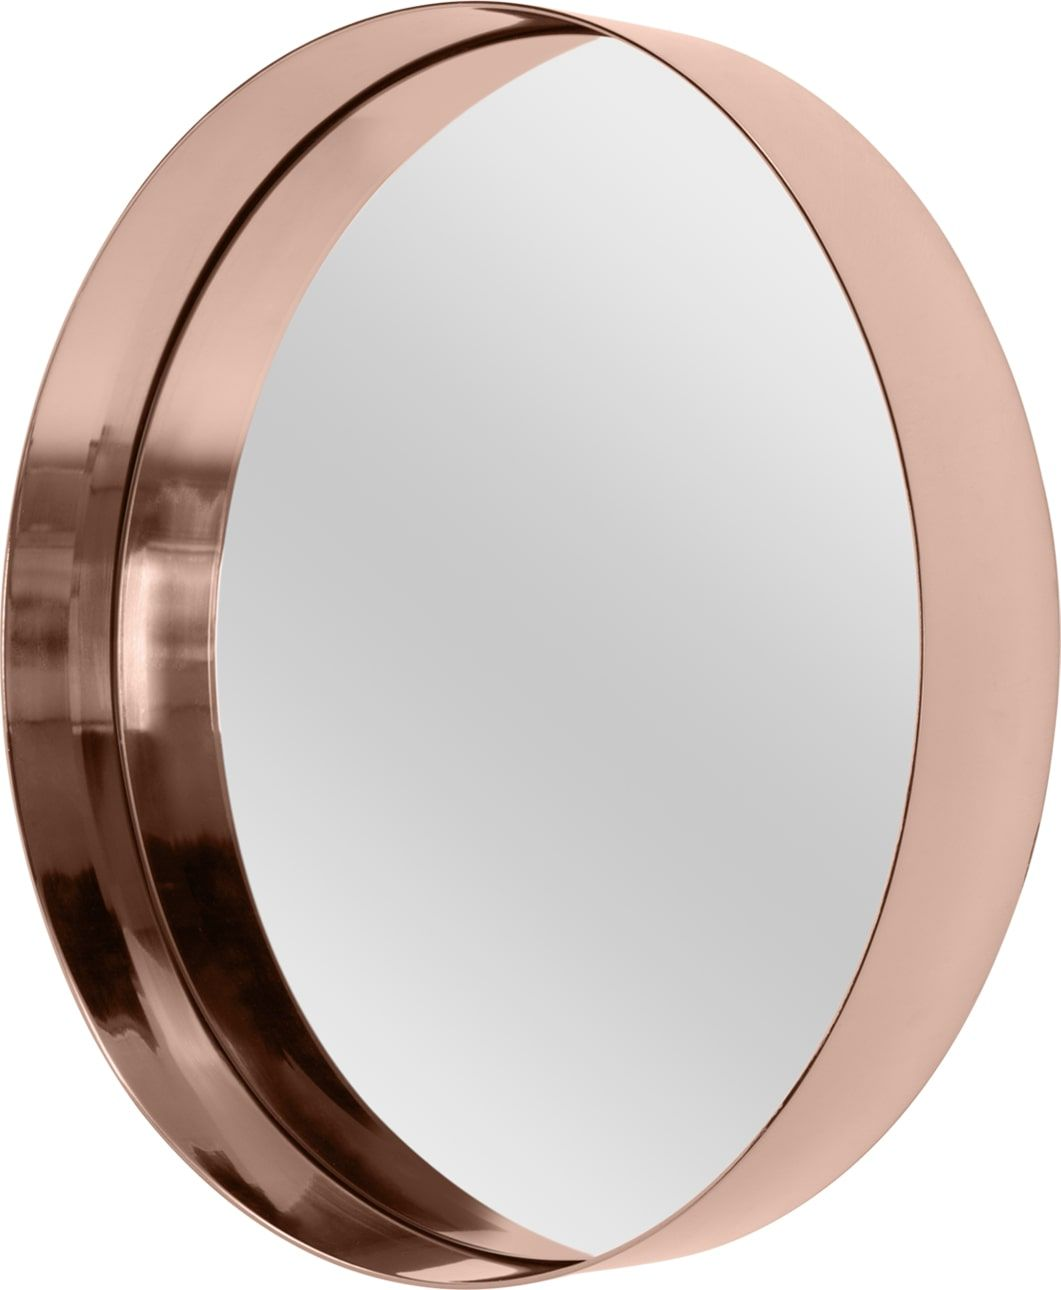 Alana Round Wall Mirror Extra Large 80 X 80 Cm Copper From Made Com New Express Delivery What S Not To Mirror Wall Round Wall Mirror Mirror Wall Living Room